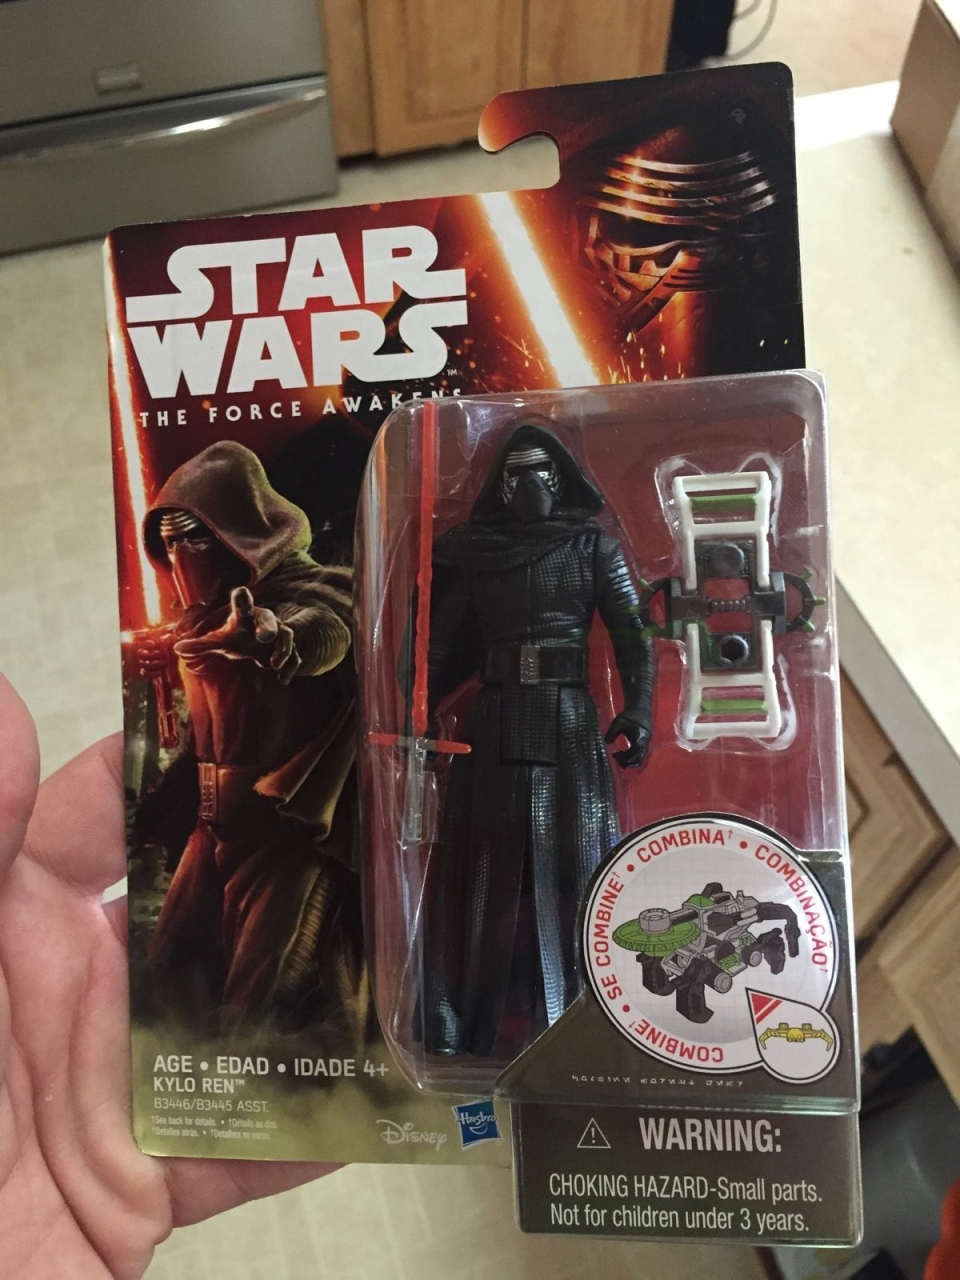 Leaked The Force Awakens Kylo Ren Action Figure Sells on eBay